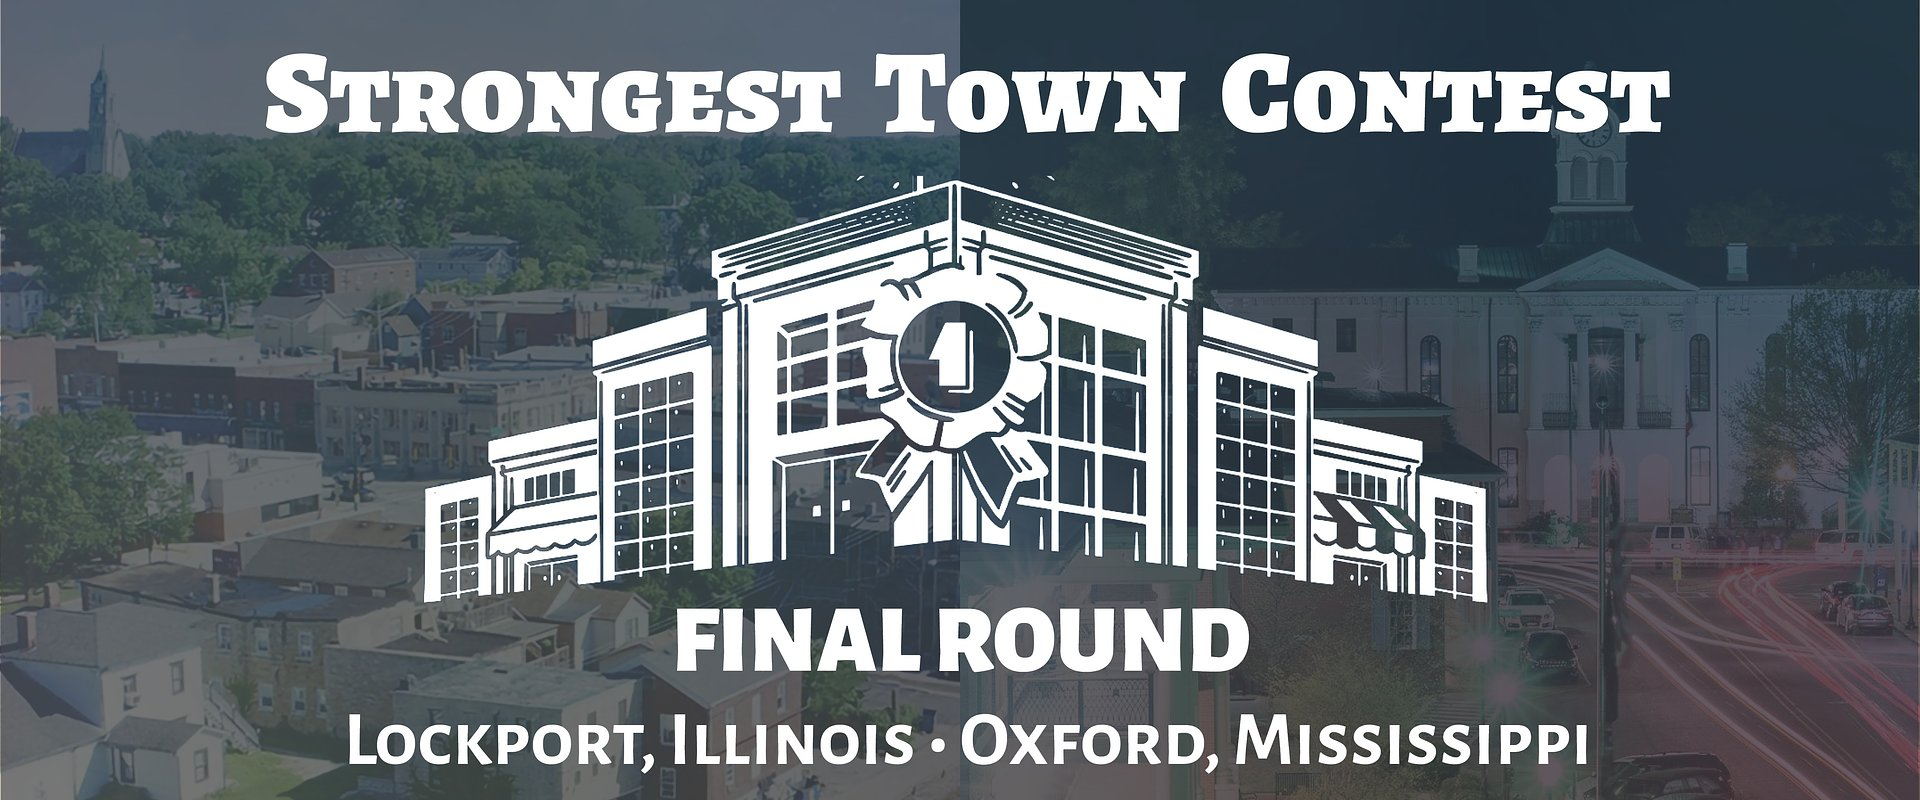 Oxford, Lockport face off in Strongest Town Contest finals